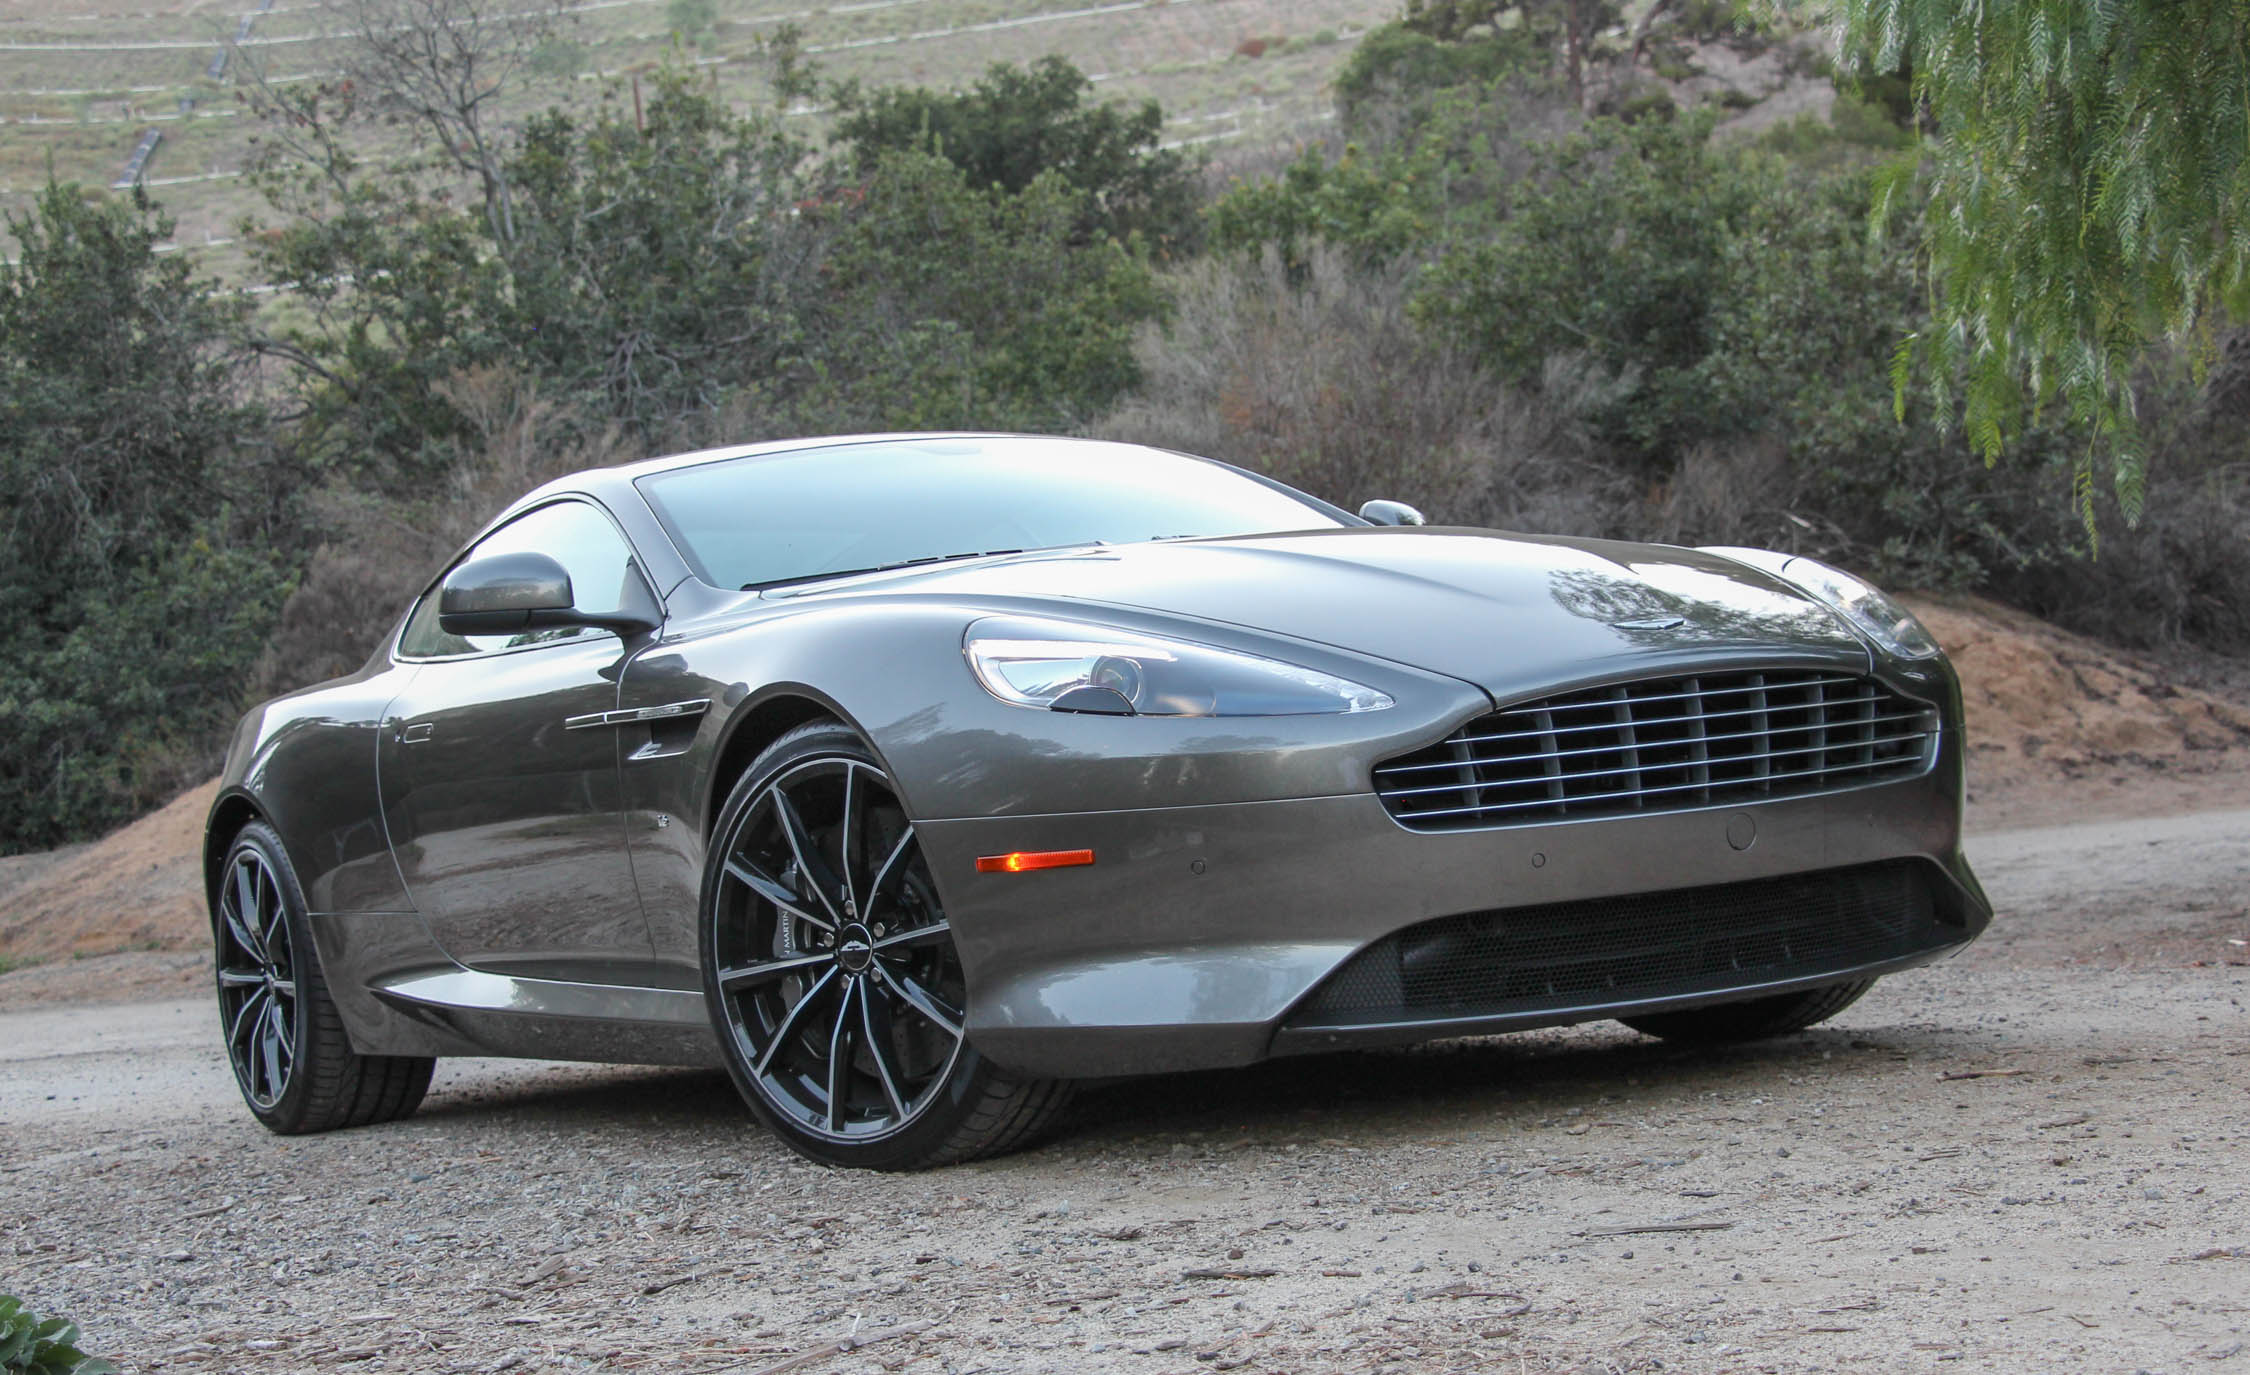 2016 Aston Martin DB9 GT (View 11 of 18)